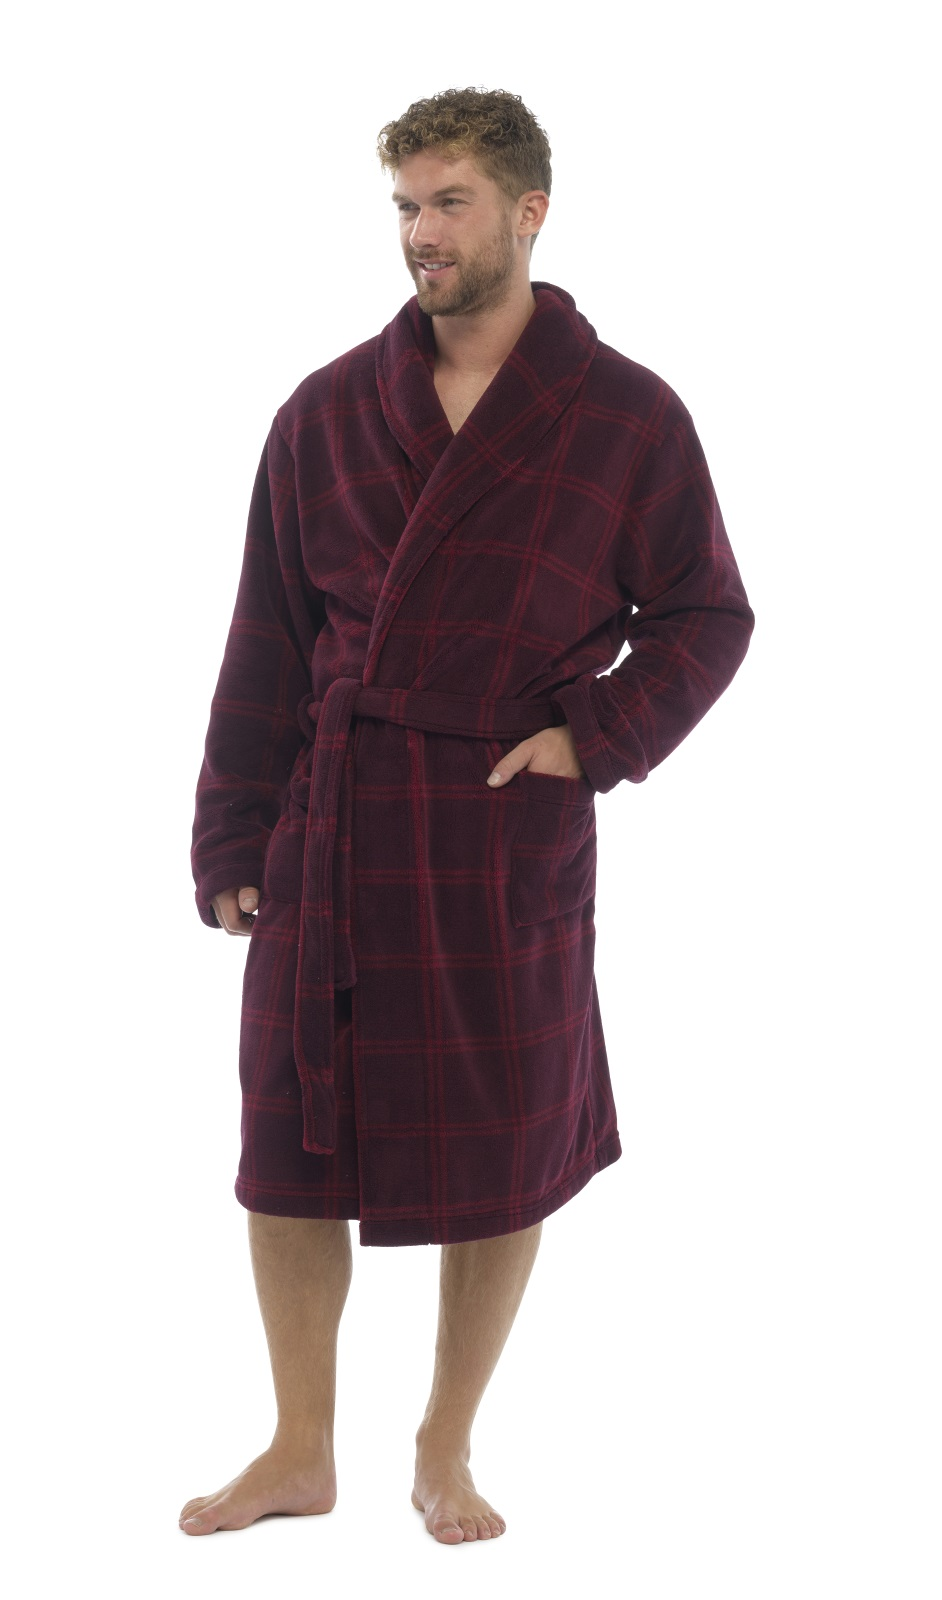 Mens Luxury Full Length Velour Fleece Robe Dressing Gown Boys Gents ...